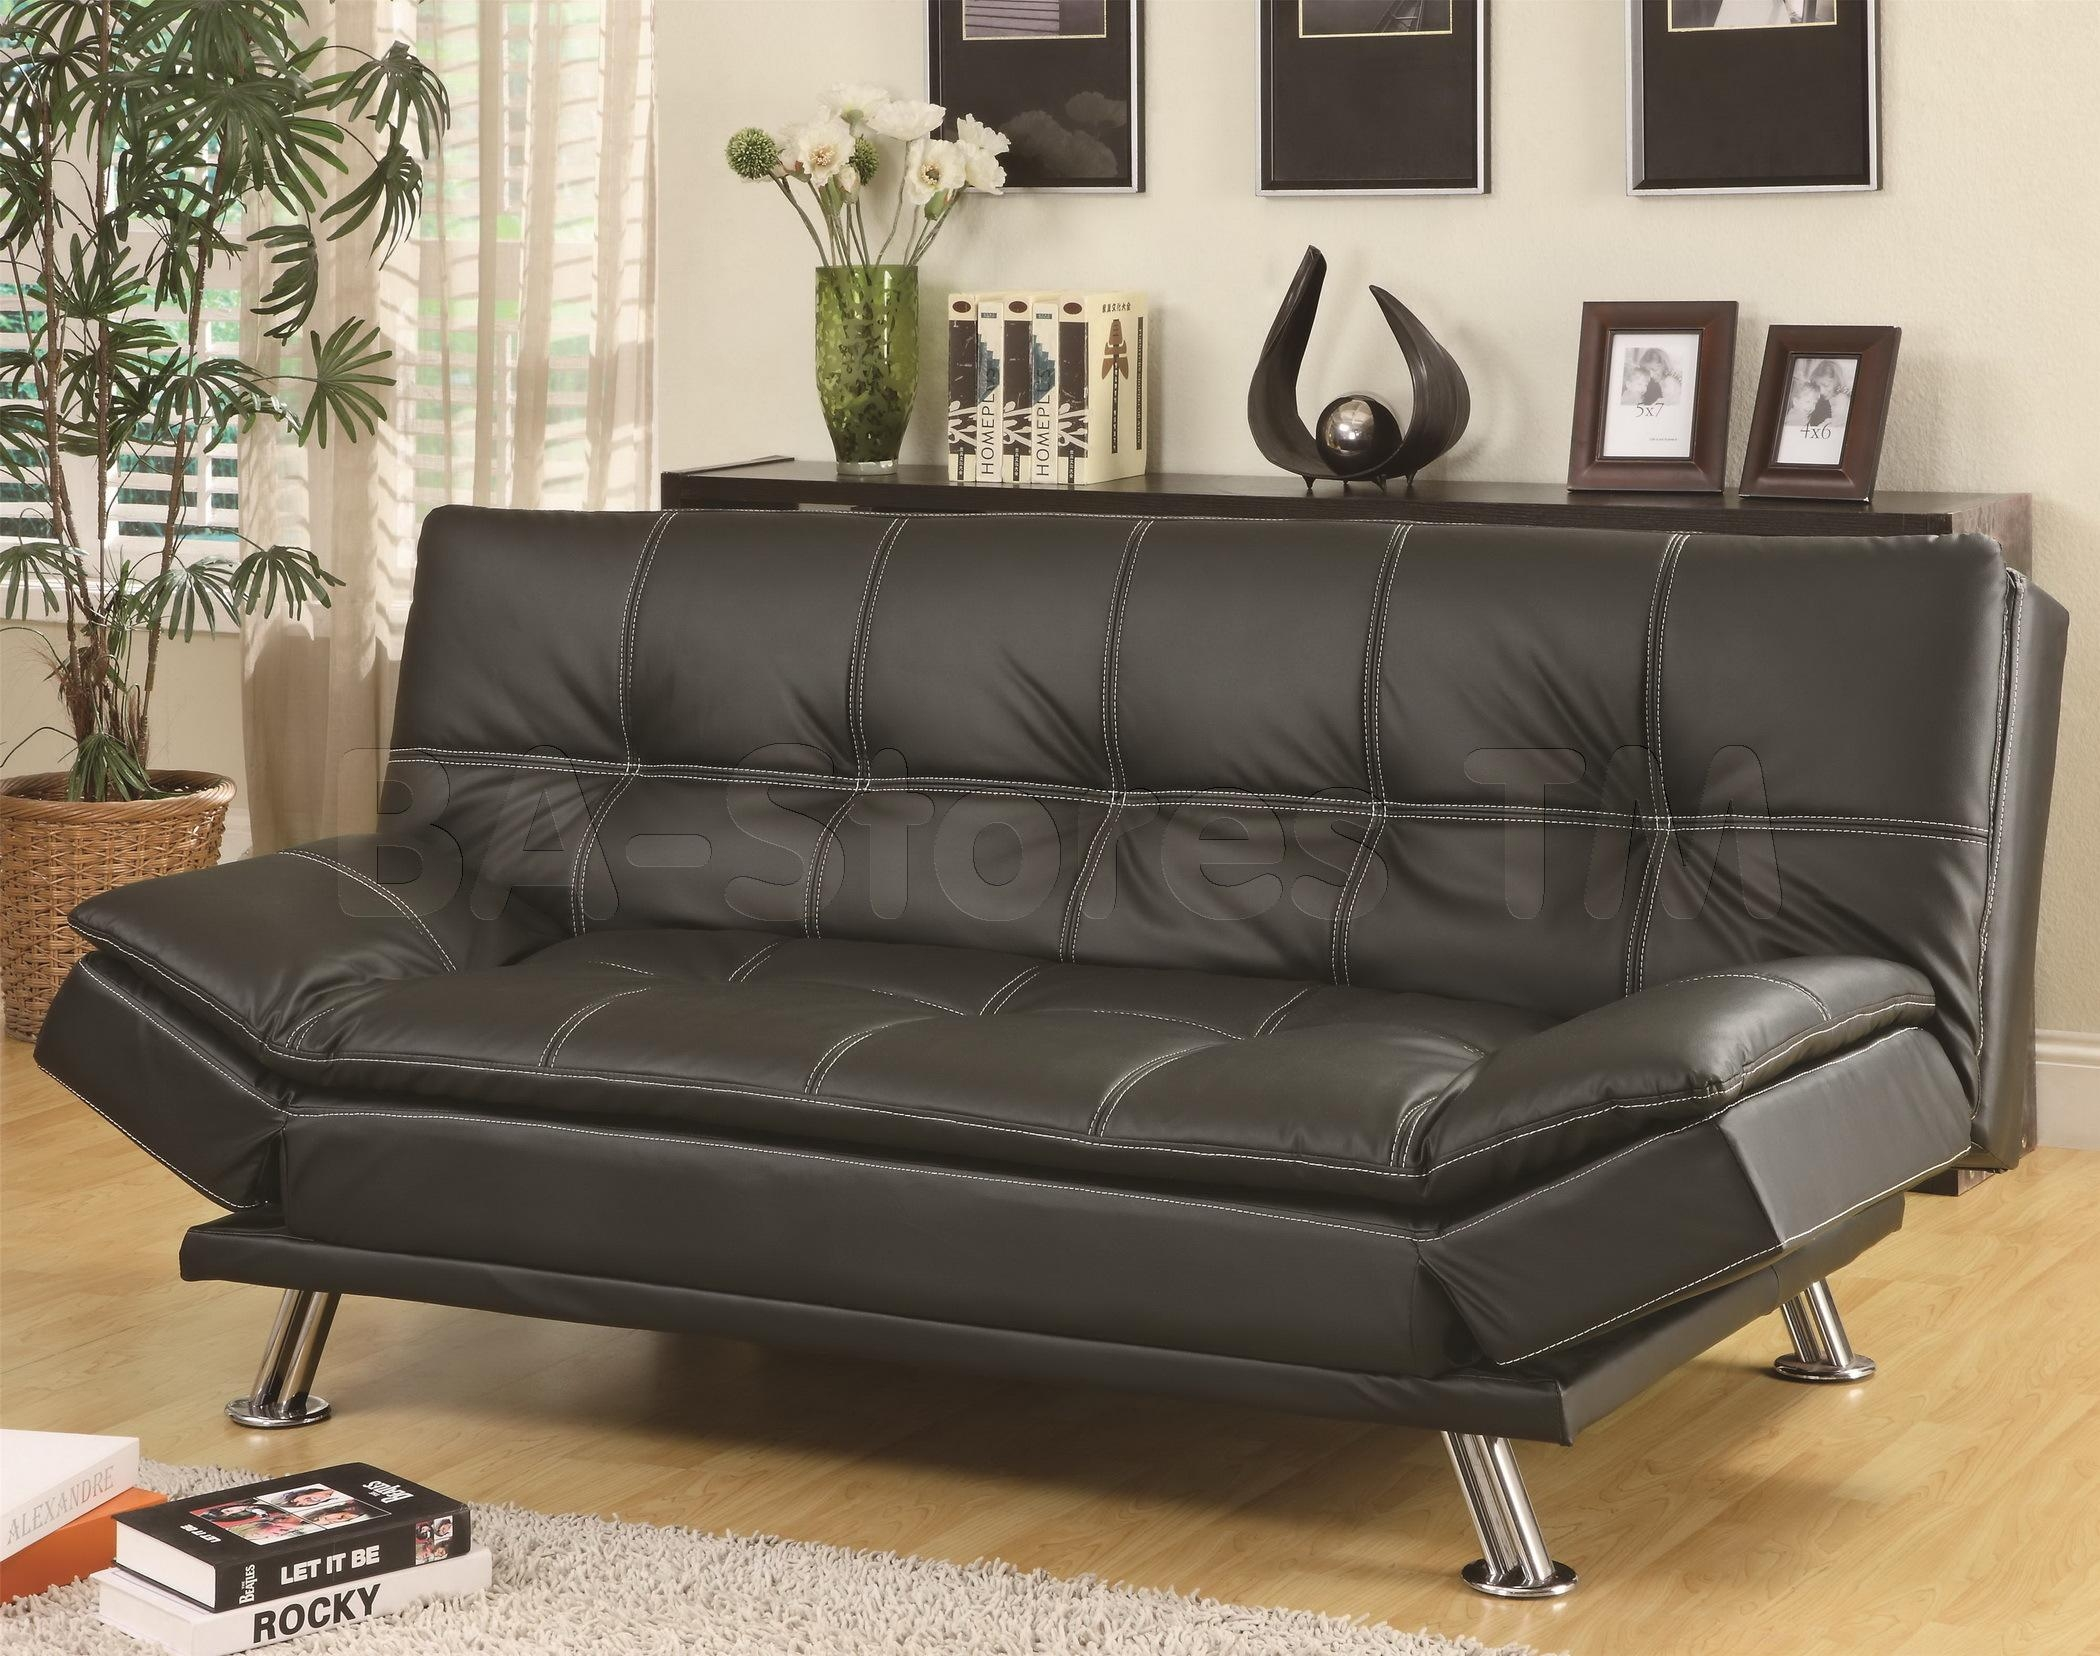 Sofas Center : Fresh Castro Convertible Sofa Galleries Striking Pertaining To Castro Convertible Sofa Beds (Image 16 of 20)